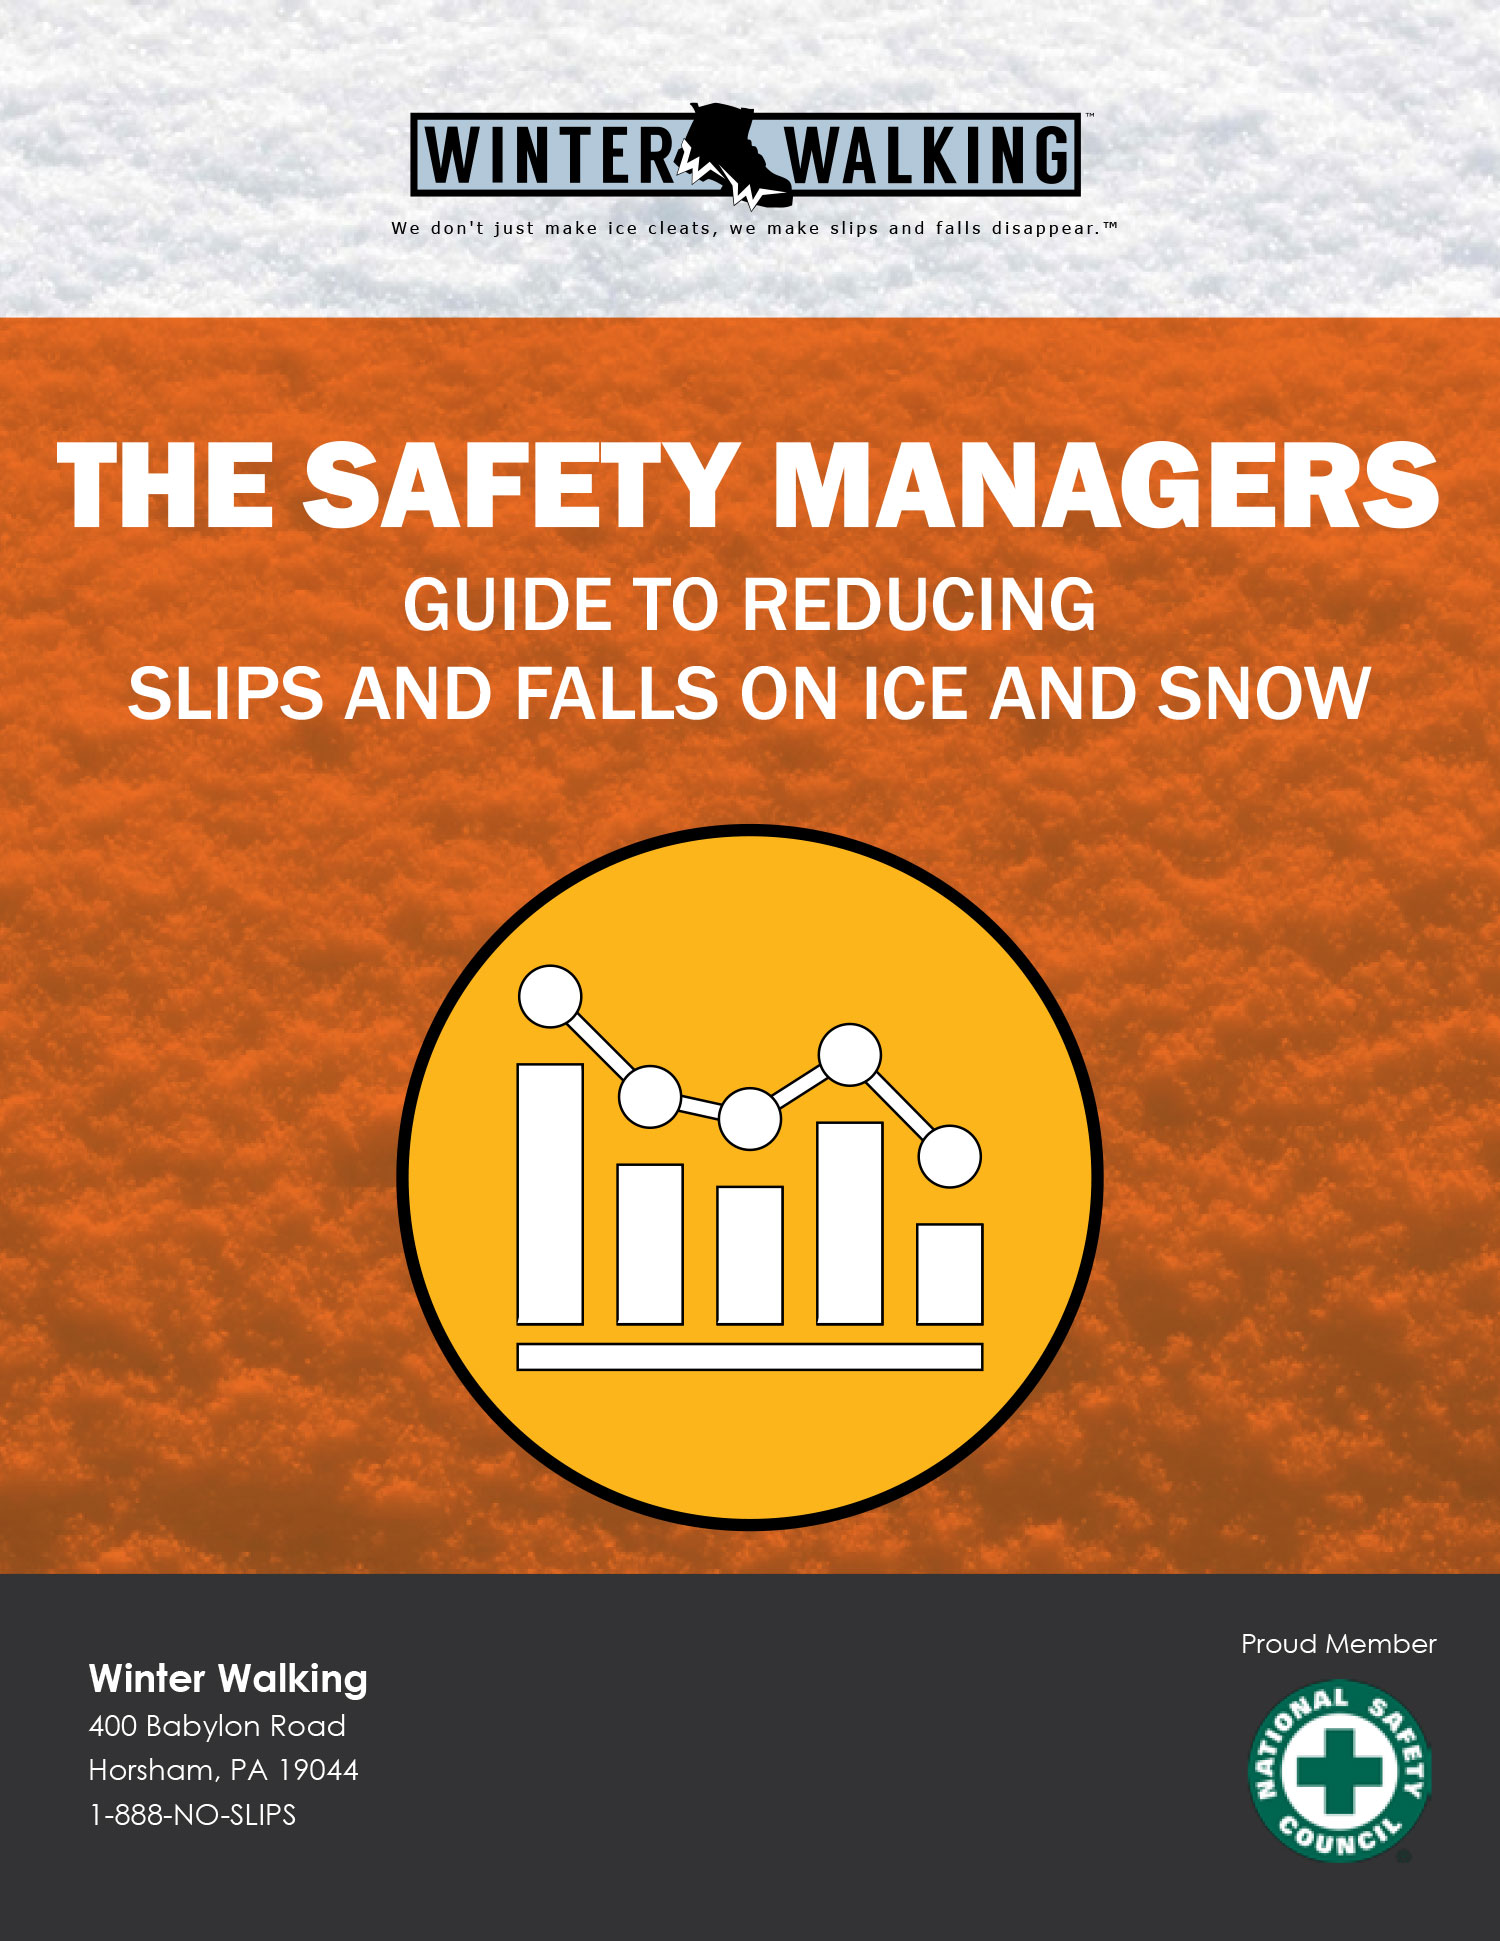 Safety Managers Guide to Reducing Slips and Falls